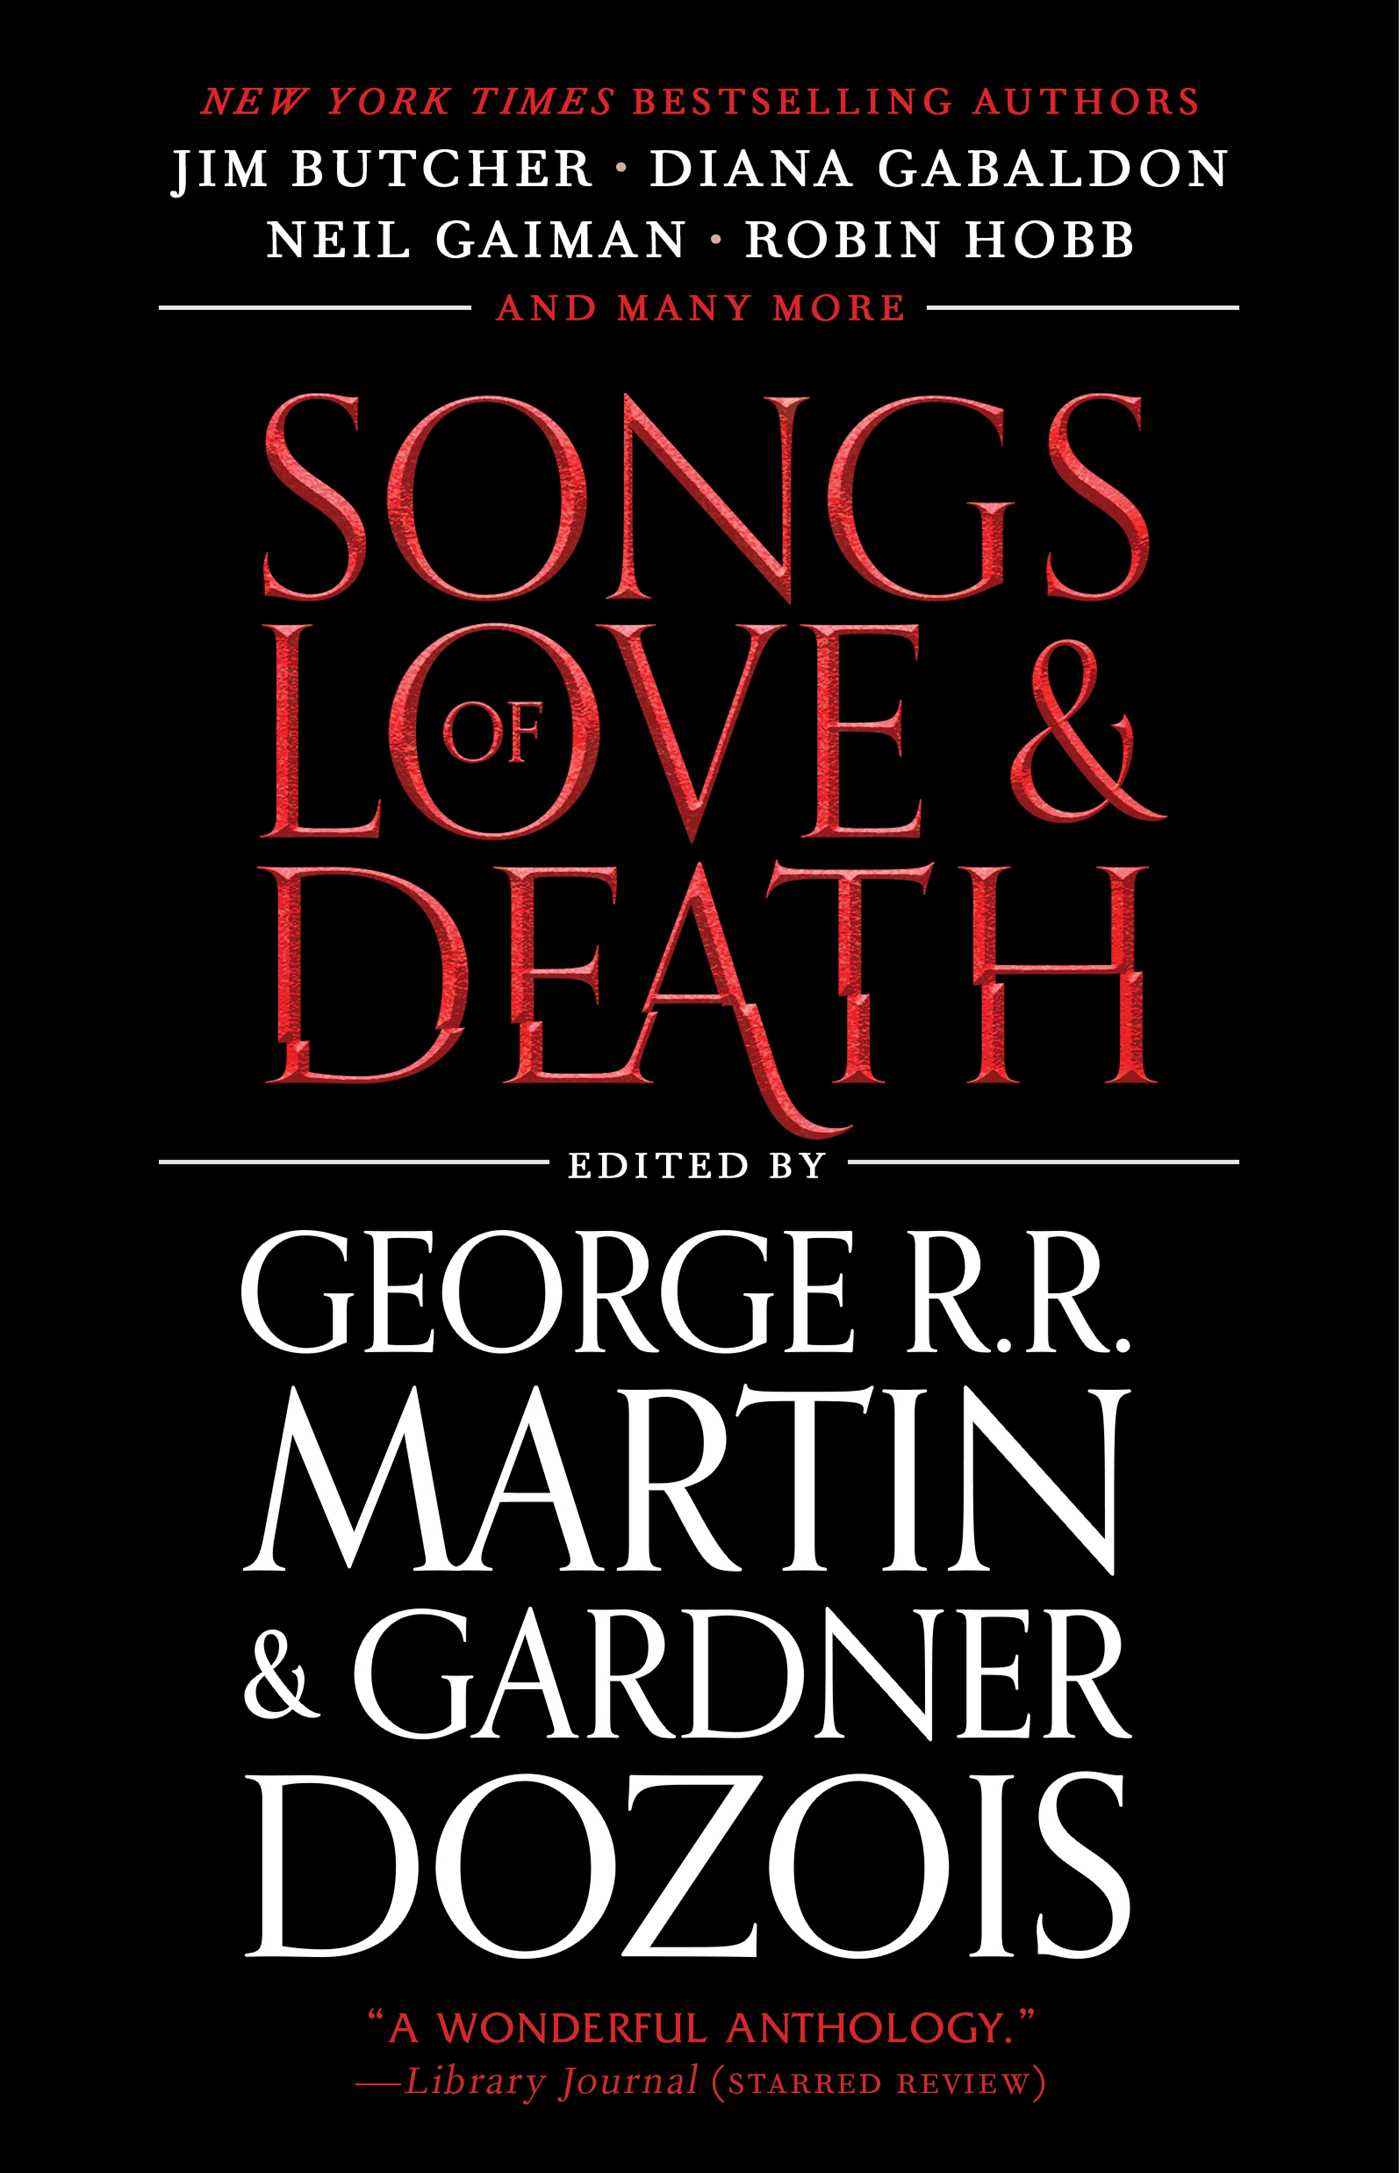 Songs-of-love-and-death-9781439170830_hr